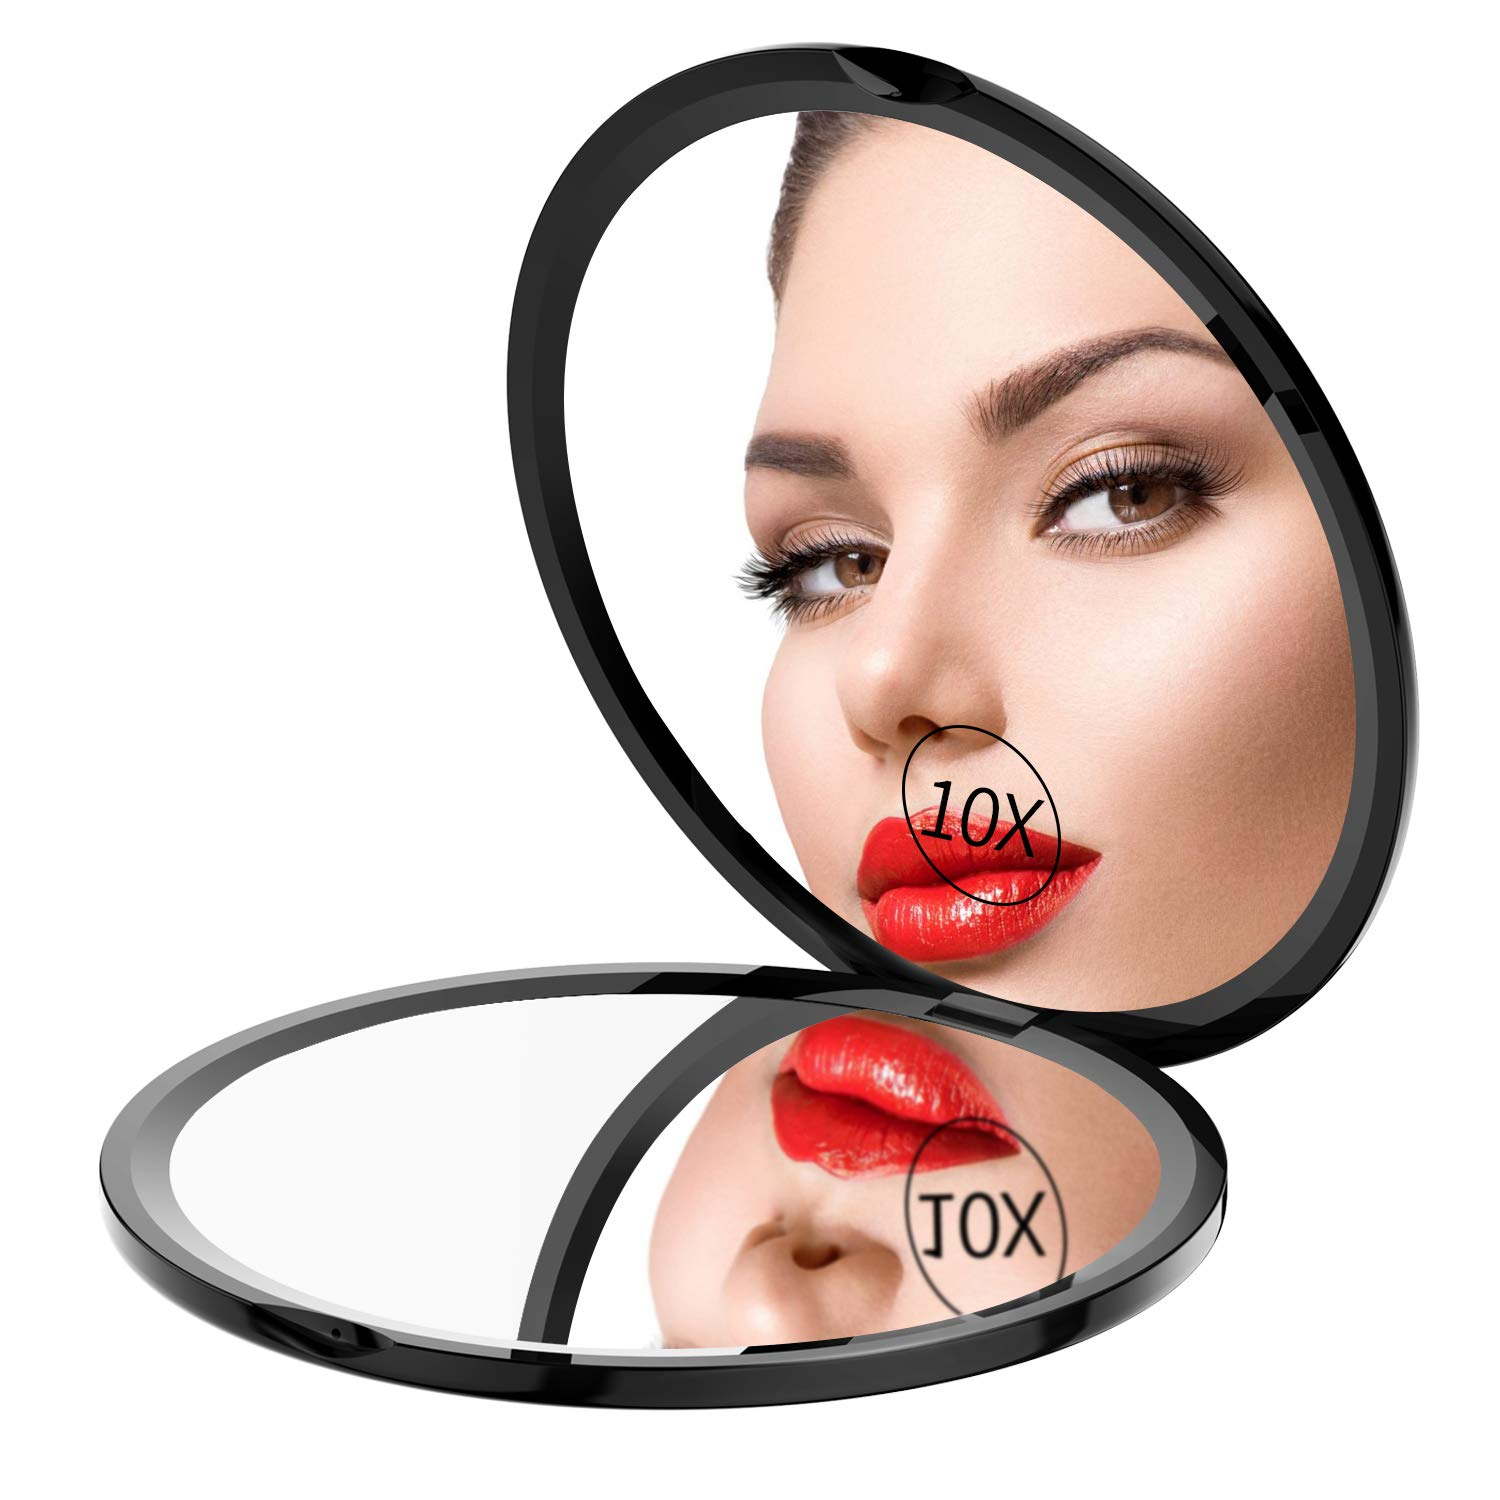 Gospire Pocket Makeup Mirror for Travel, 1X 10X Double Sided Magnifying Compact Handbag Cosmetic Mirror, 4 Inch Ultra-thin Handheld Round Foldable Portable Mirror for Women Black